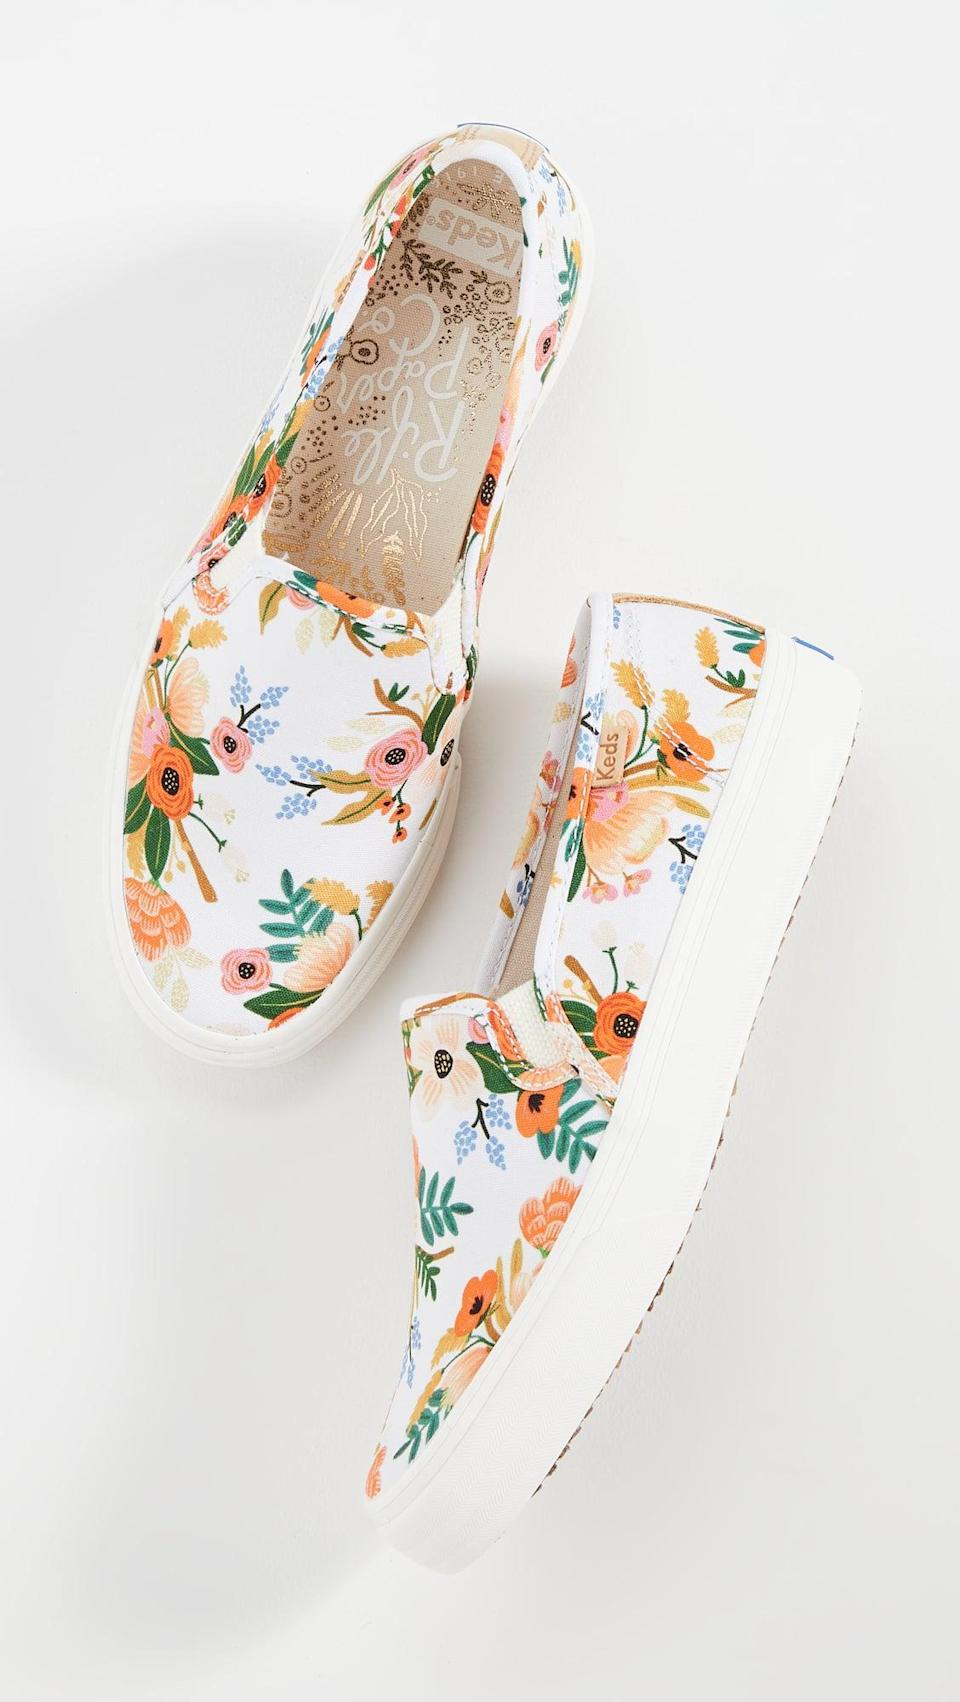 "<p>Nothing says Spring quite like these <a href=""https://www.popsugar.com/buy/Keds-Double-Decker-Lively-Floral-Sneakers-557519?p_name=Keds%20Double%20Decker%20Lively%20Floral%20Sneakers&retailer=shopbop.com&pid=557519&price=65&evar1=fab%3Aus&evar9=44311634&evar98=https%3A%2F%2Fwww.popsugar.com%2Ffashion%2Fphoto-gallery%2F44311634%2Fimage%2F47375102%2FKeds-Double-Decker-Lively-Floral-Sneakers&list1=shopping%2Cshoes%2Csneakers%2Choliday%2Cgift%20guide%2Ceditors%20pick%2Cfashion%20gifts%2Cgifts%20for%20women&prop13=api&pdata=1"" class=""link rapid-noclick-resp"" rel=""nofollow noopener"" target=""_blank"" data-ylk=""slk:Keds Double Decker Lively Floral Sneakers"">Keds Double Decker Lively Floral Sneakers</a> ($65).</p>"